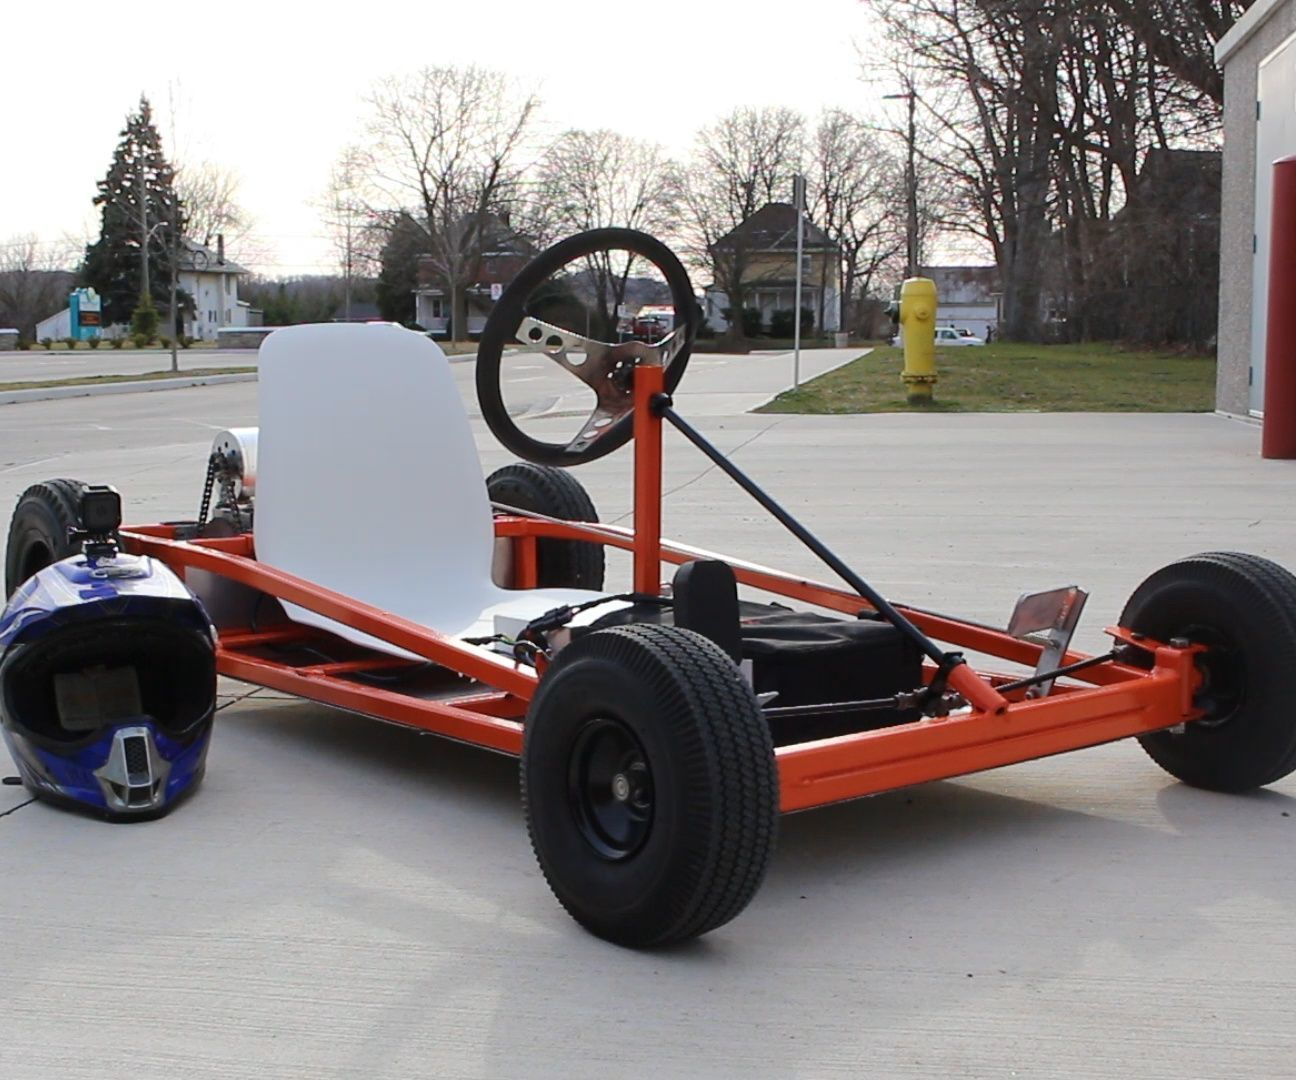 How to Make an Electric Go Kart | Cars, Electric vehicle and Car vehicle